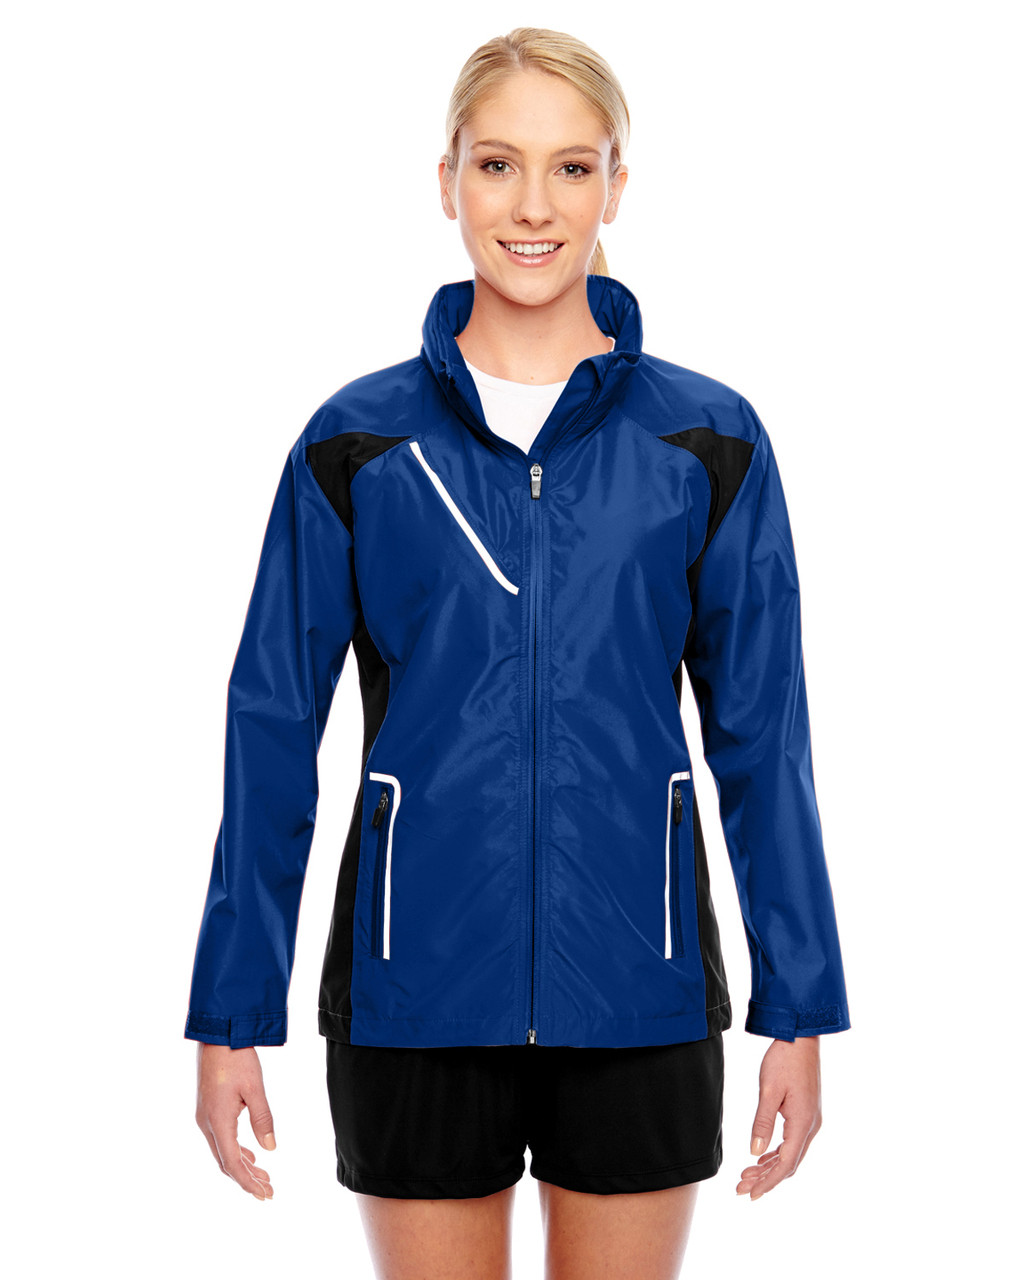 Sport Royal - TT86W Team 365 Dominator Waterproof Jacket